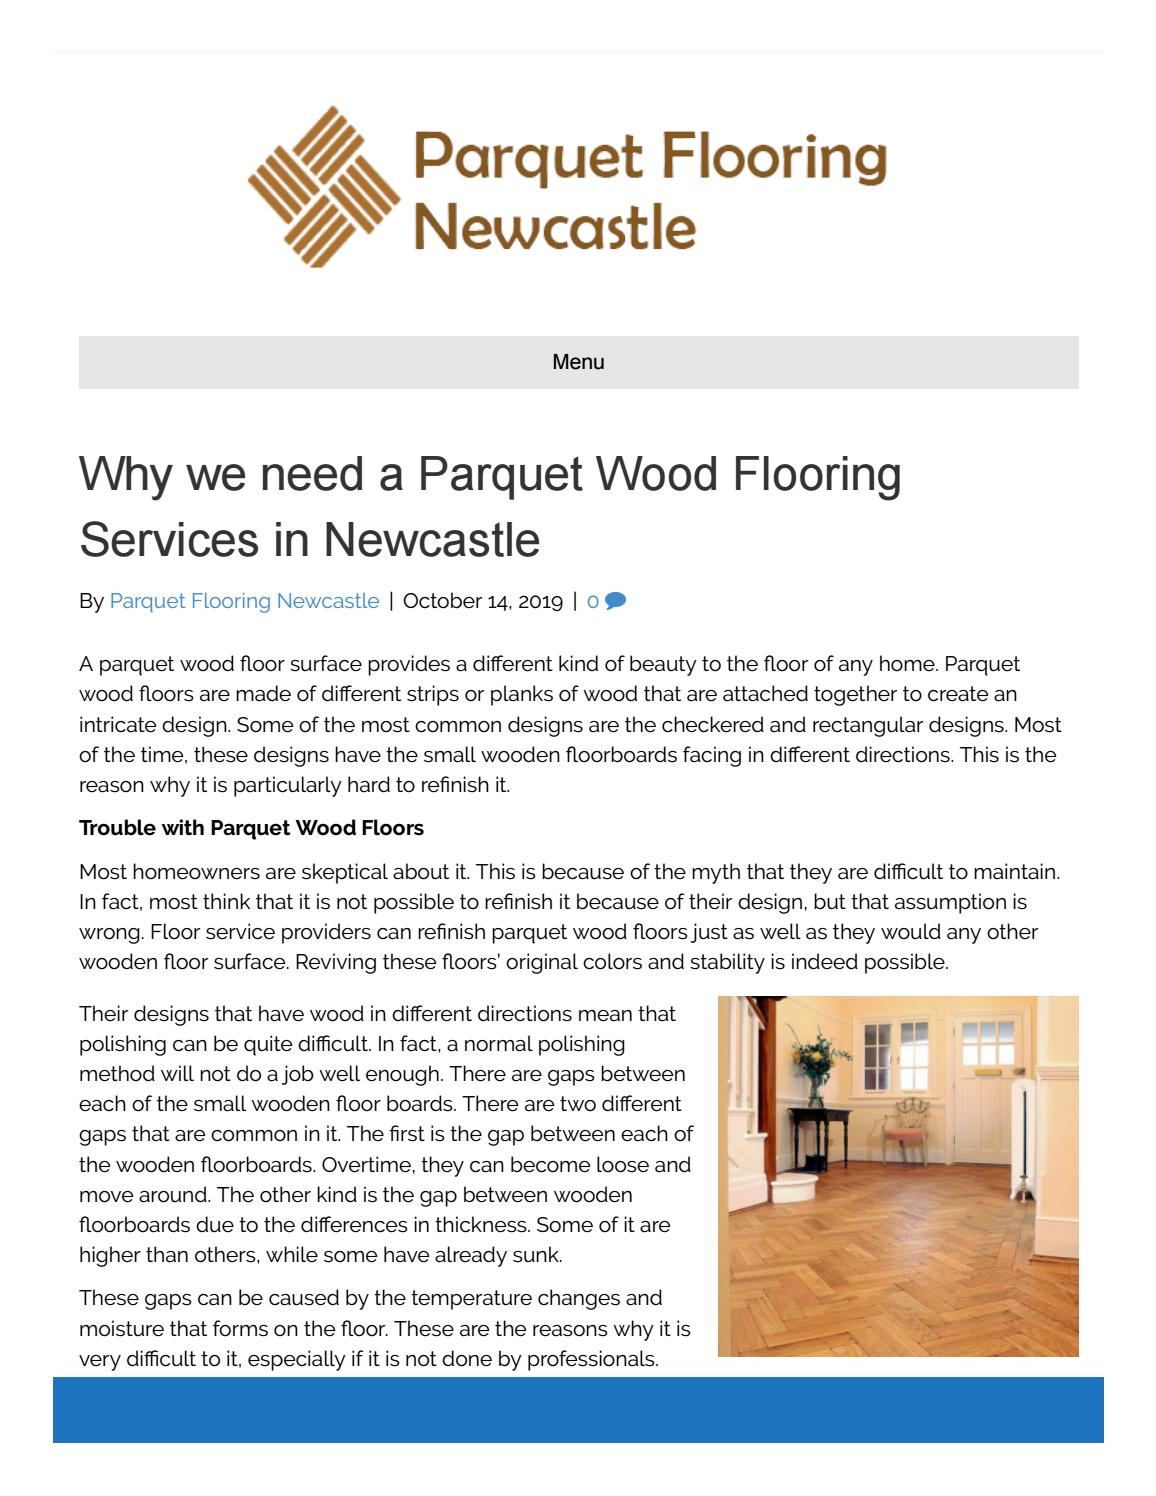 Why We Need A Parquet Wood Flooring Services In Newcastle By